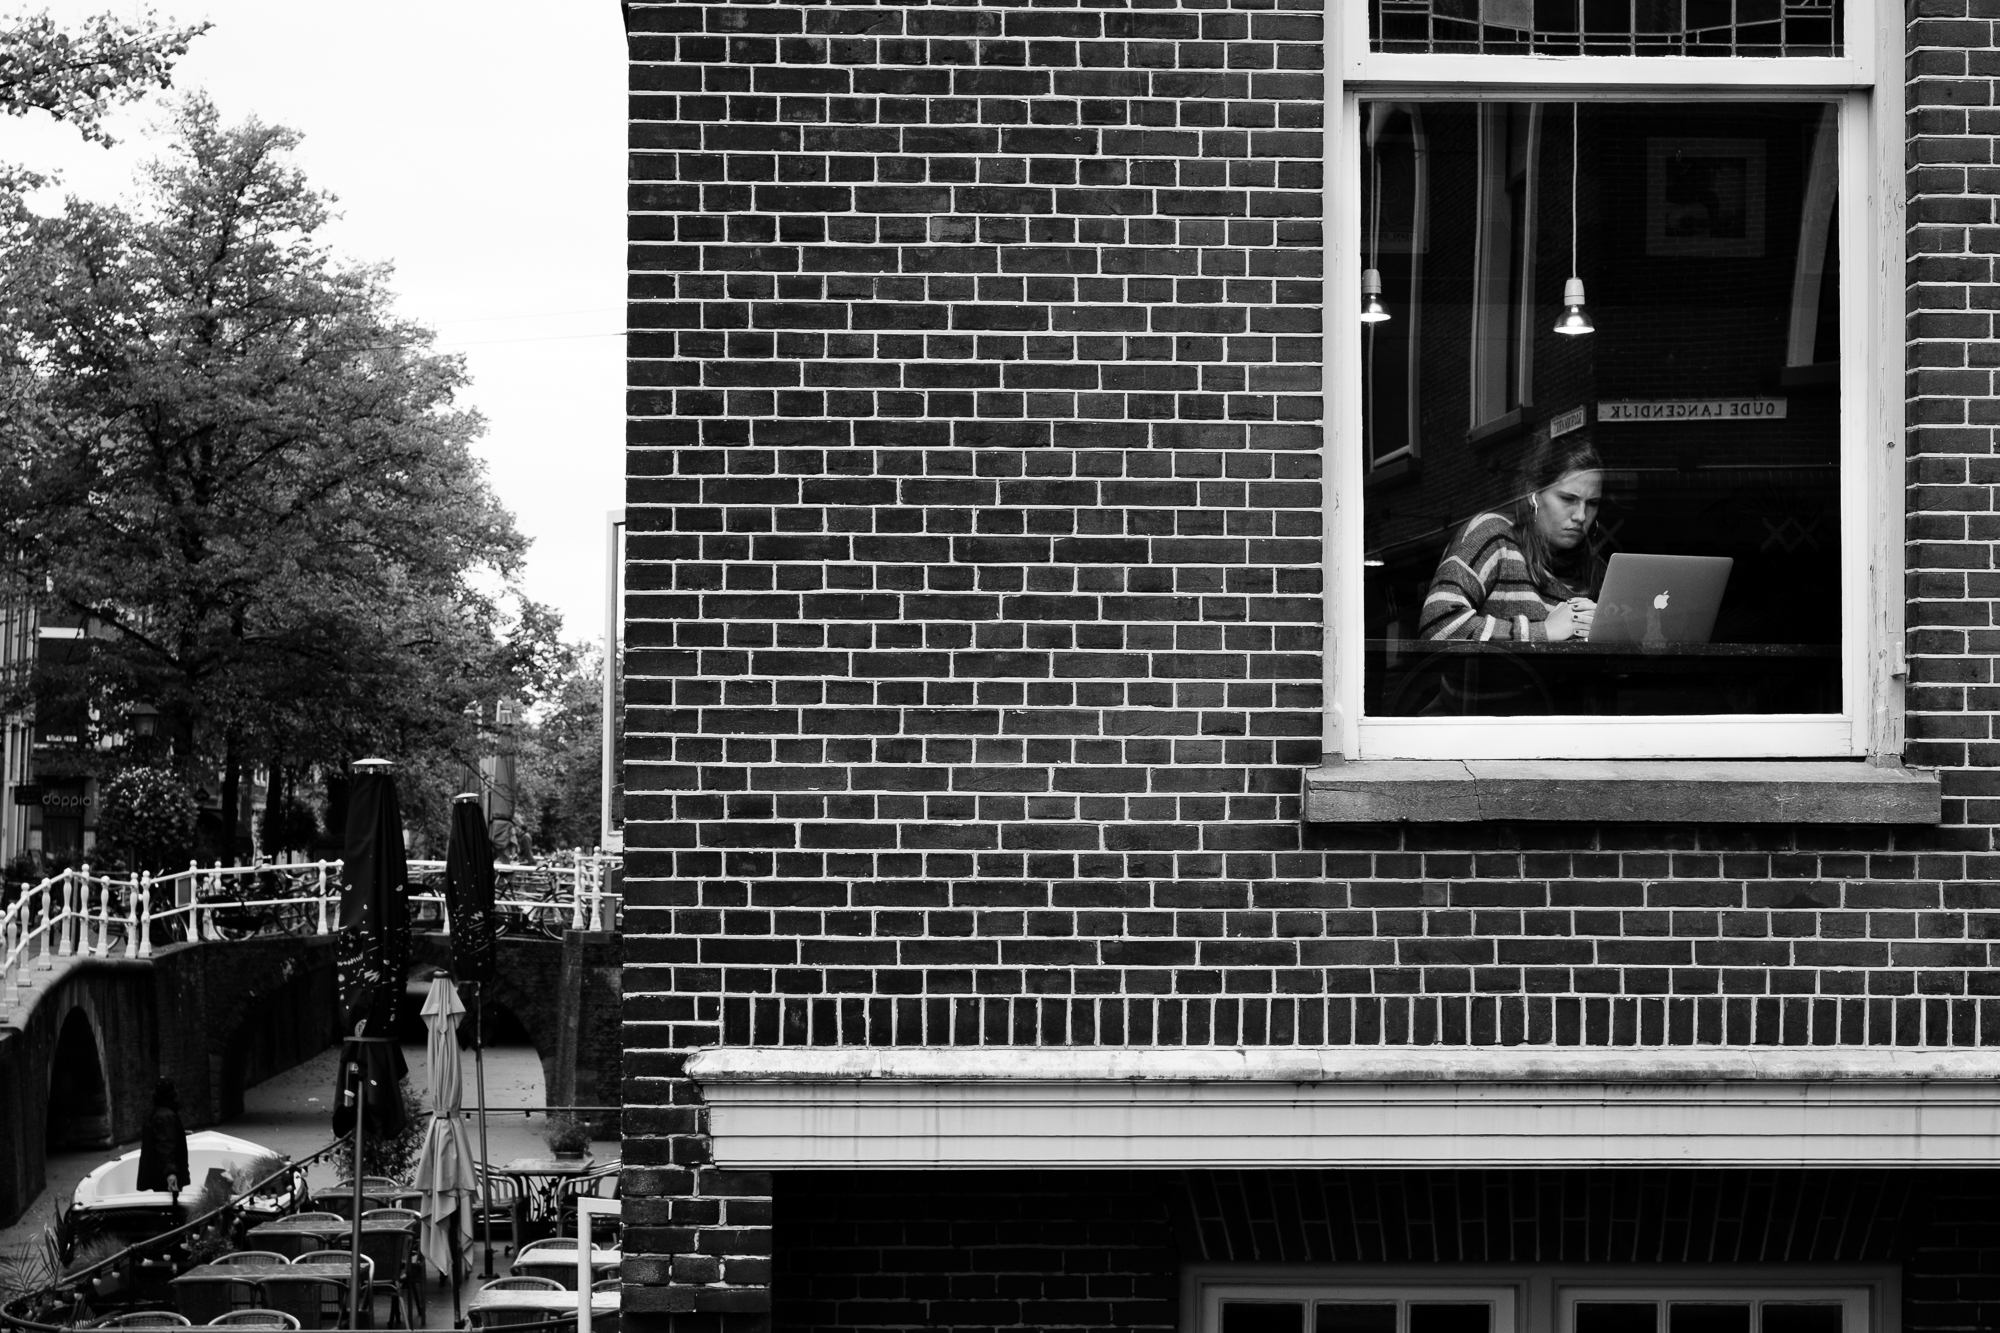 A girl working on her Macbook behind a window in Delft, the Netherlands